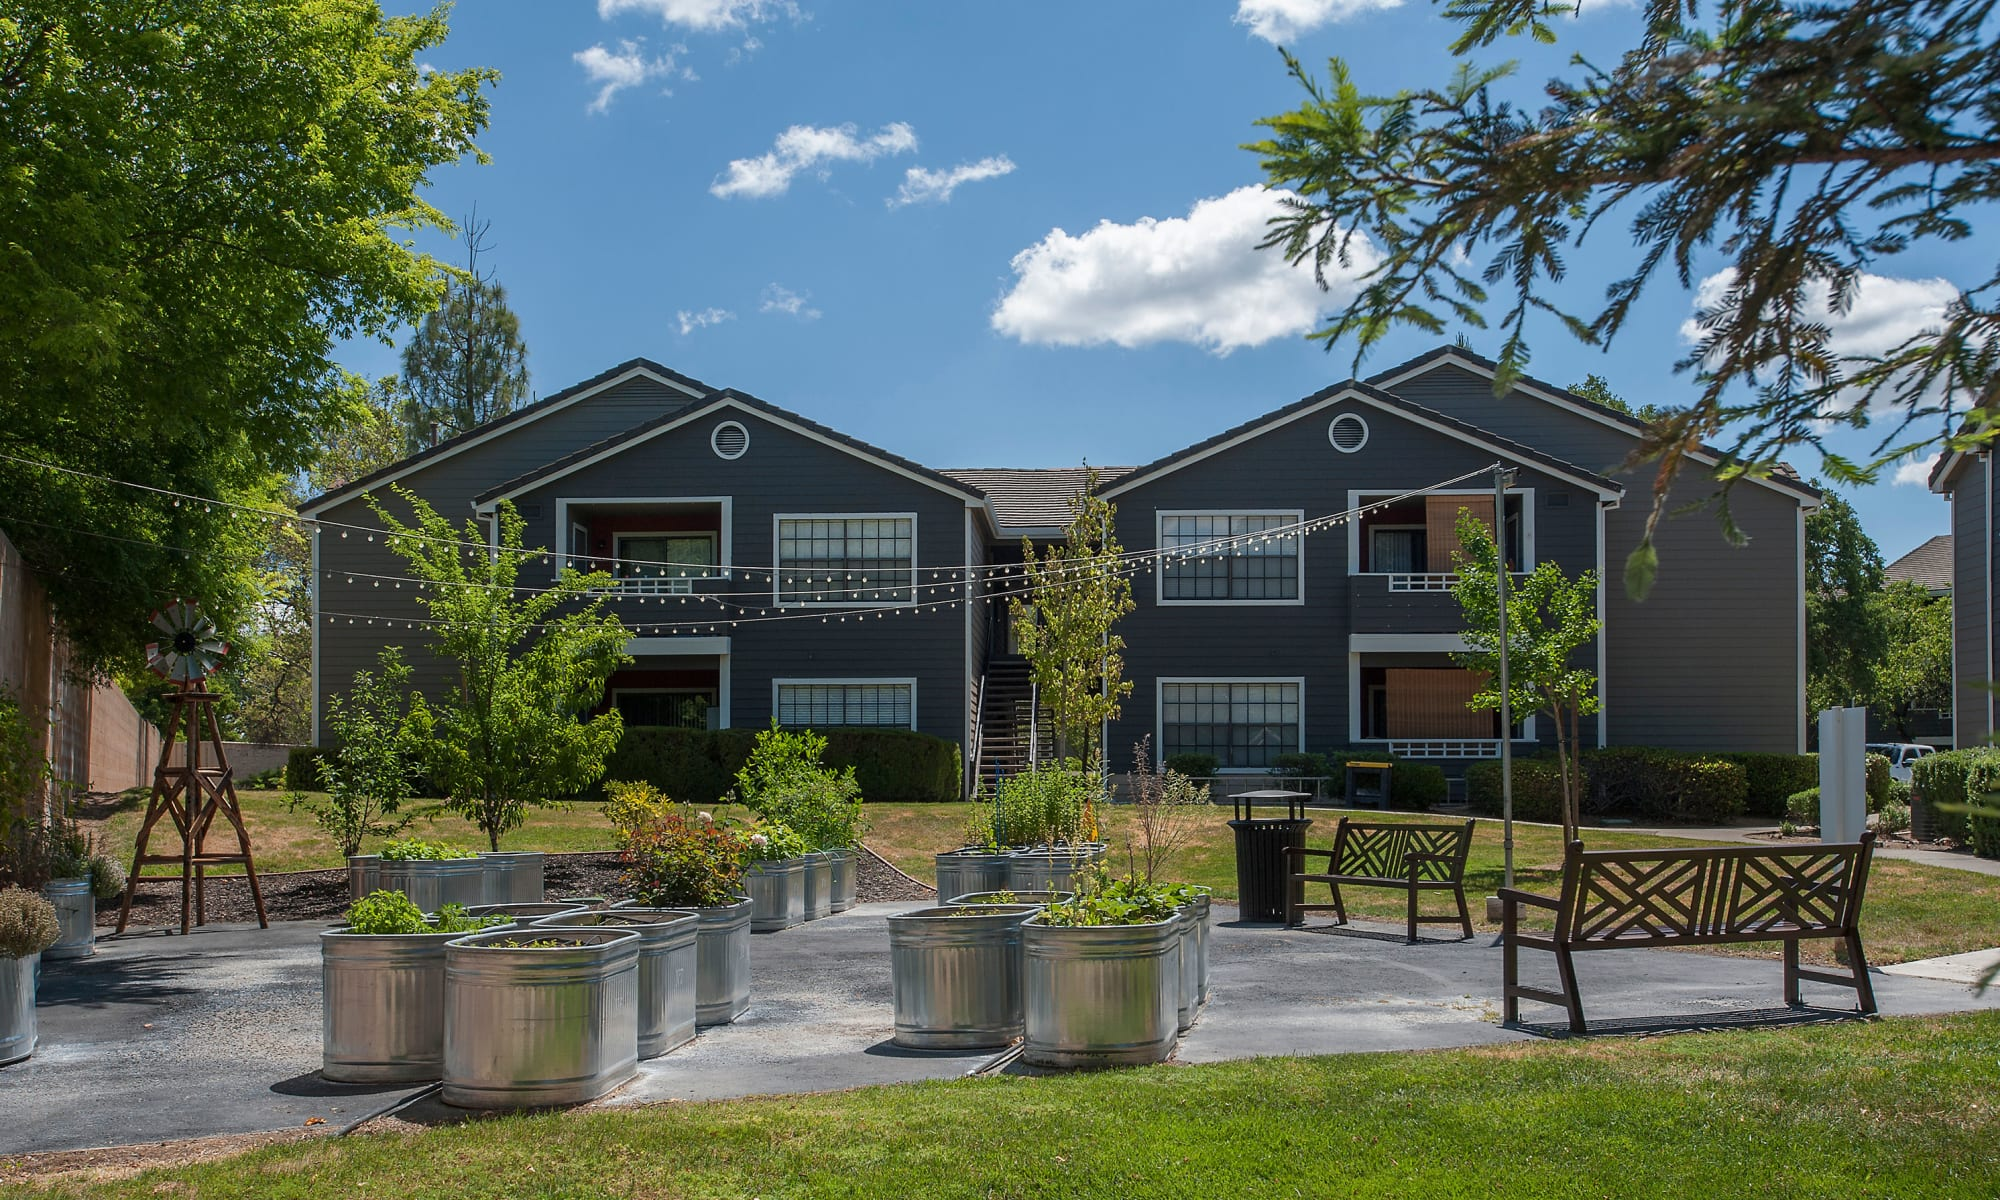 Apartments in Roseville, California at Slate Creek Apartments